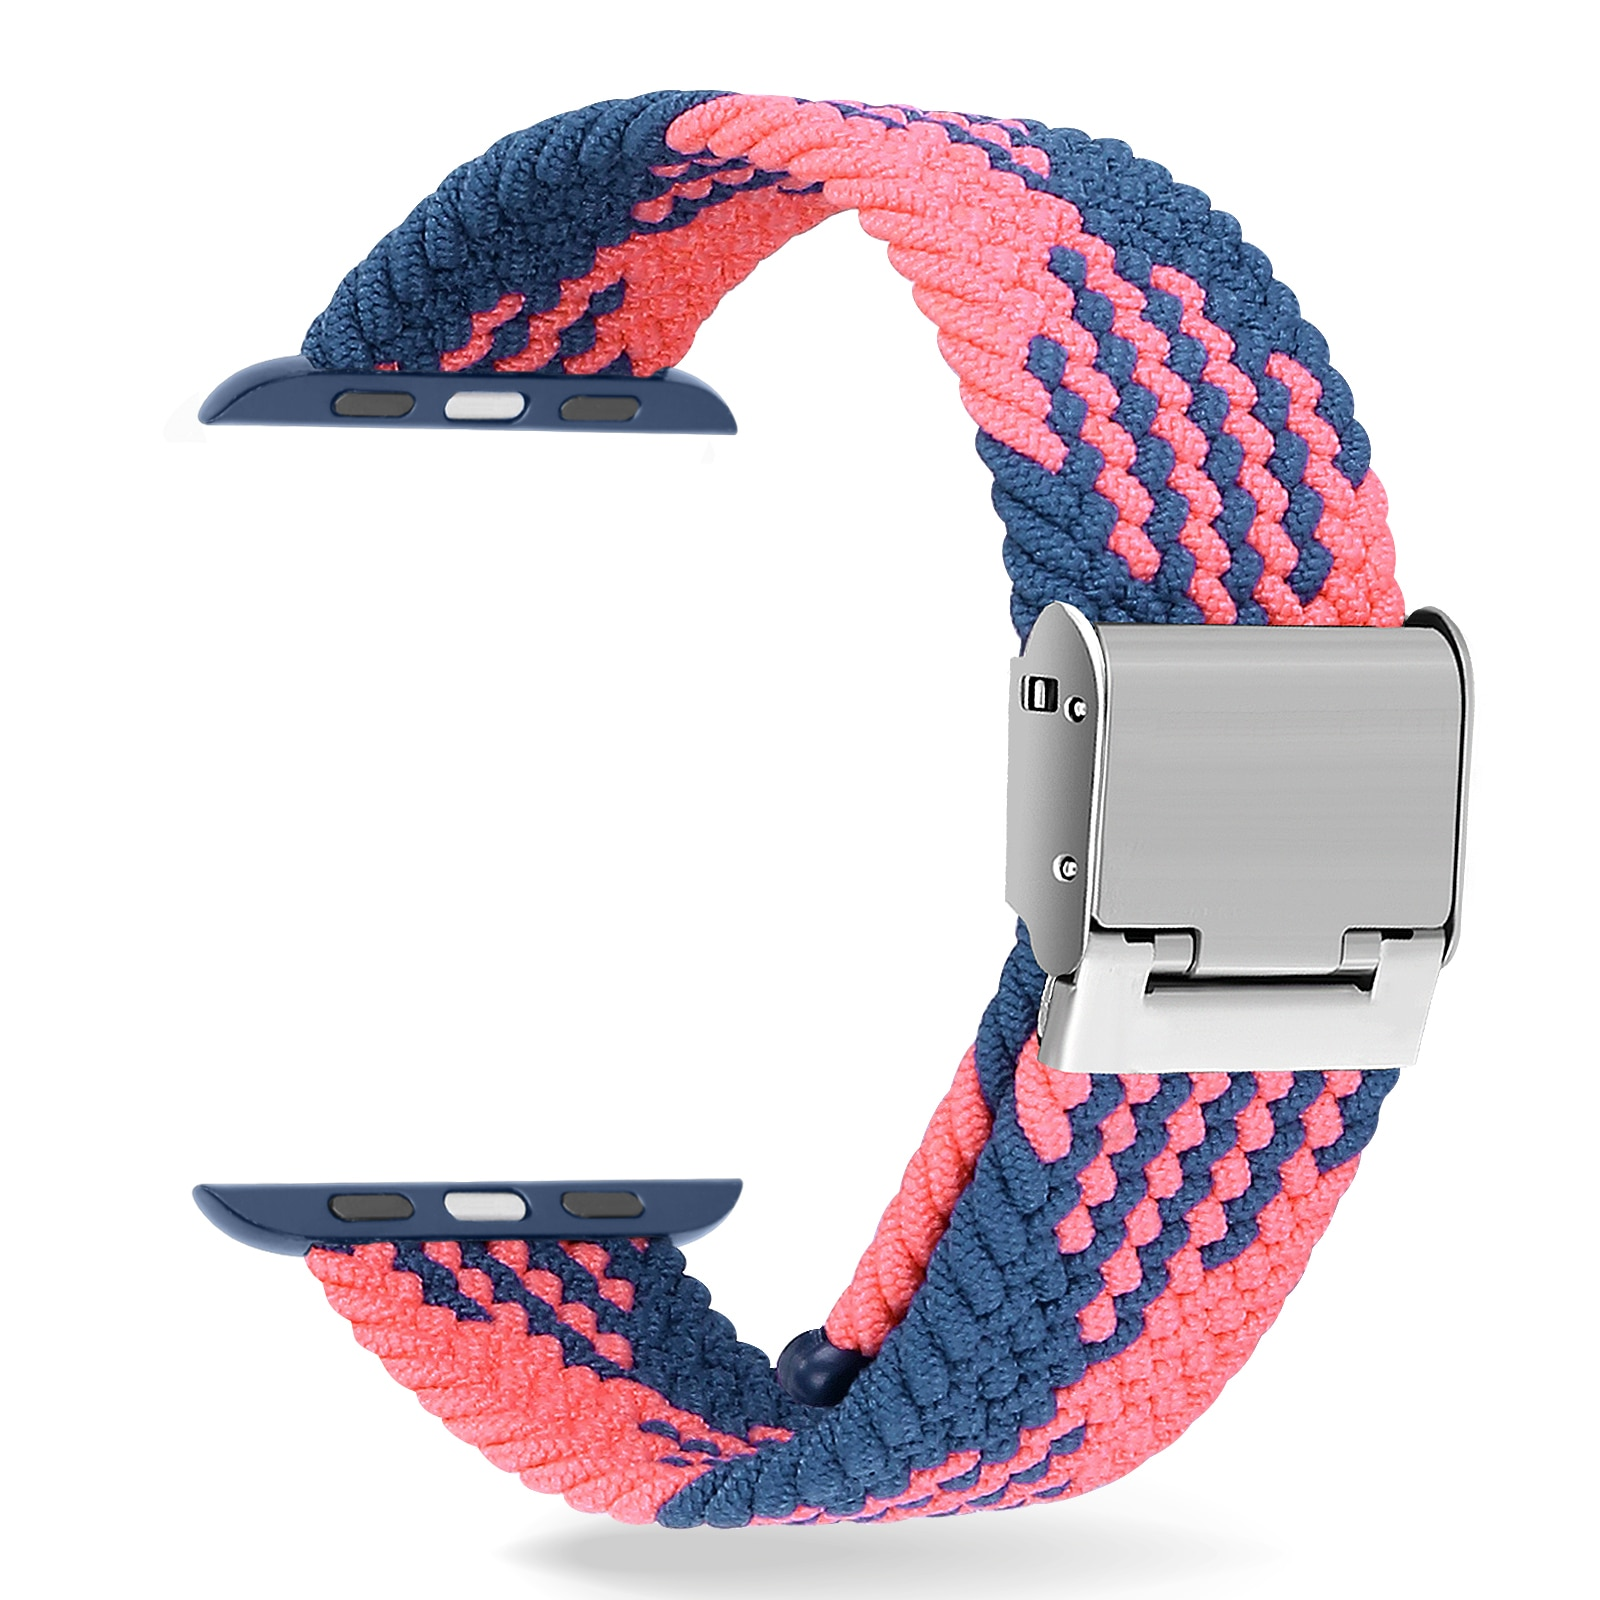 2021-length-adjustable-braided-nylon-applewatch-band-braided-solo-elastic-bracelet-for-iwatch-series-6-se-5-4-3-2-1